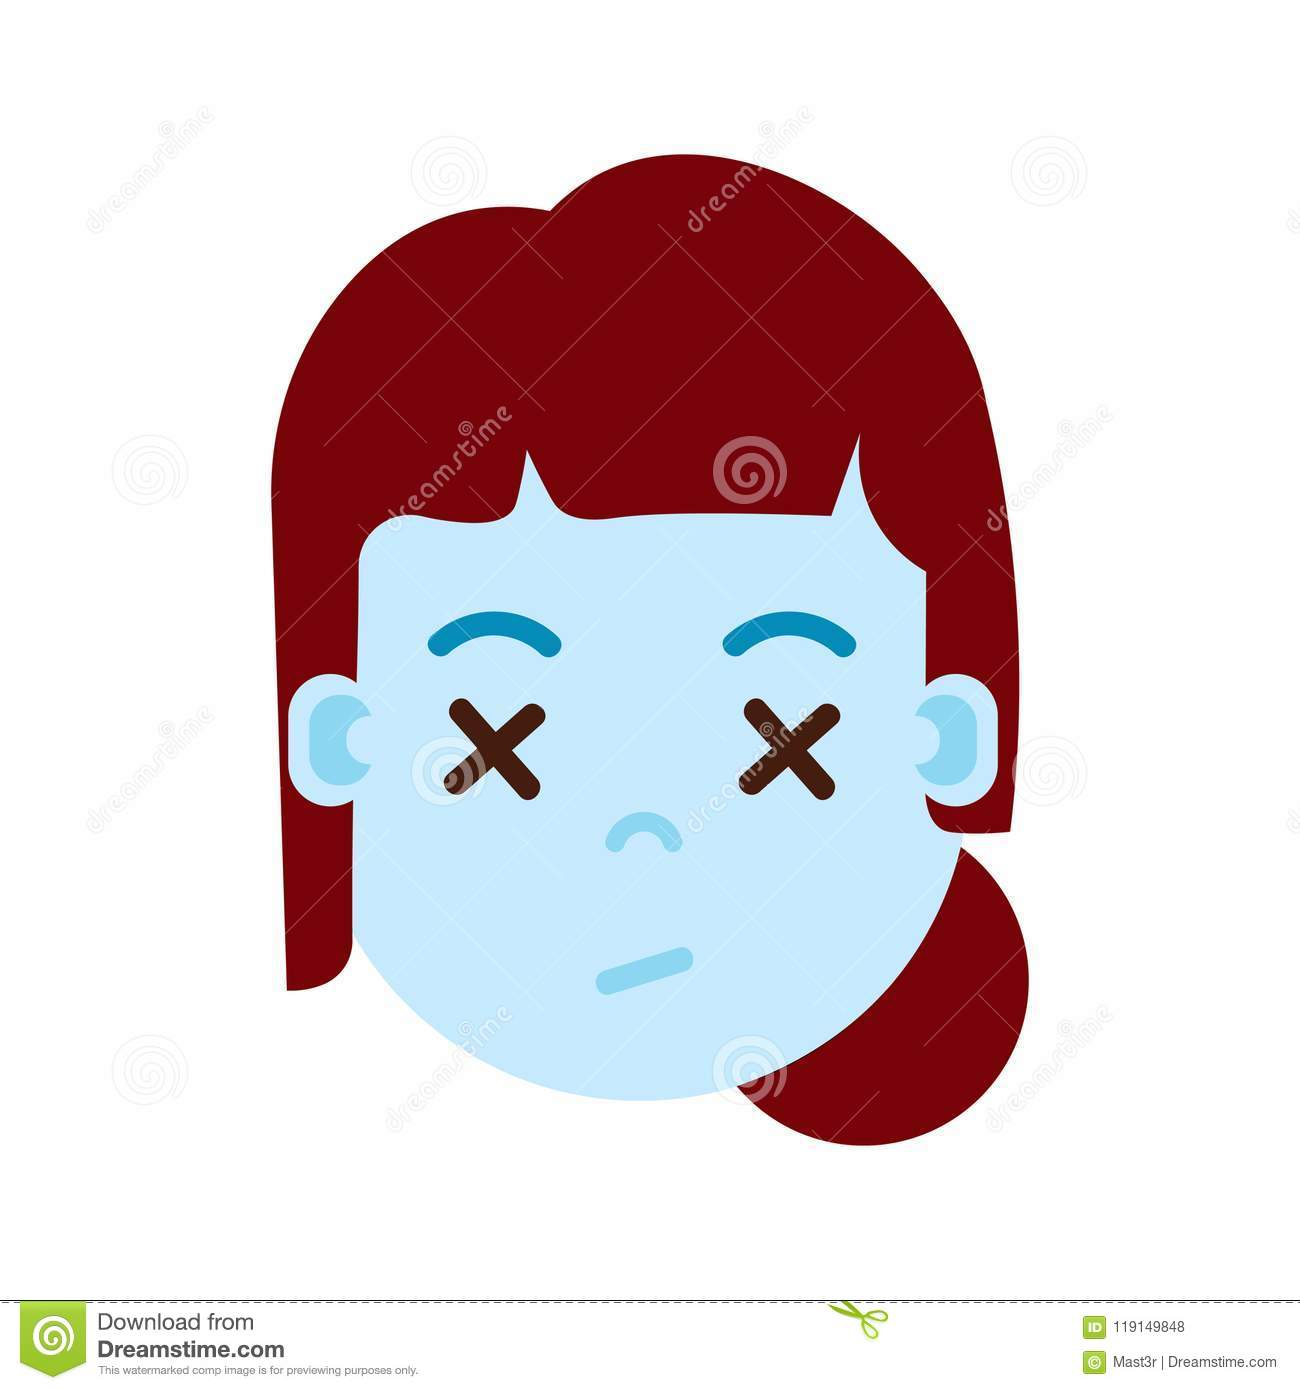 Girl Head Emoji With Facial Emotions Avatar Character Woman Dead